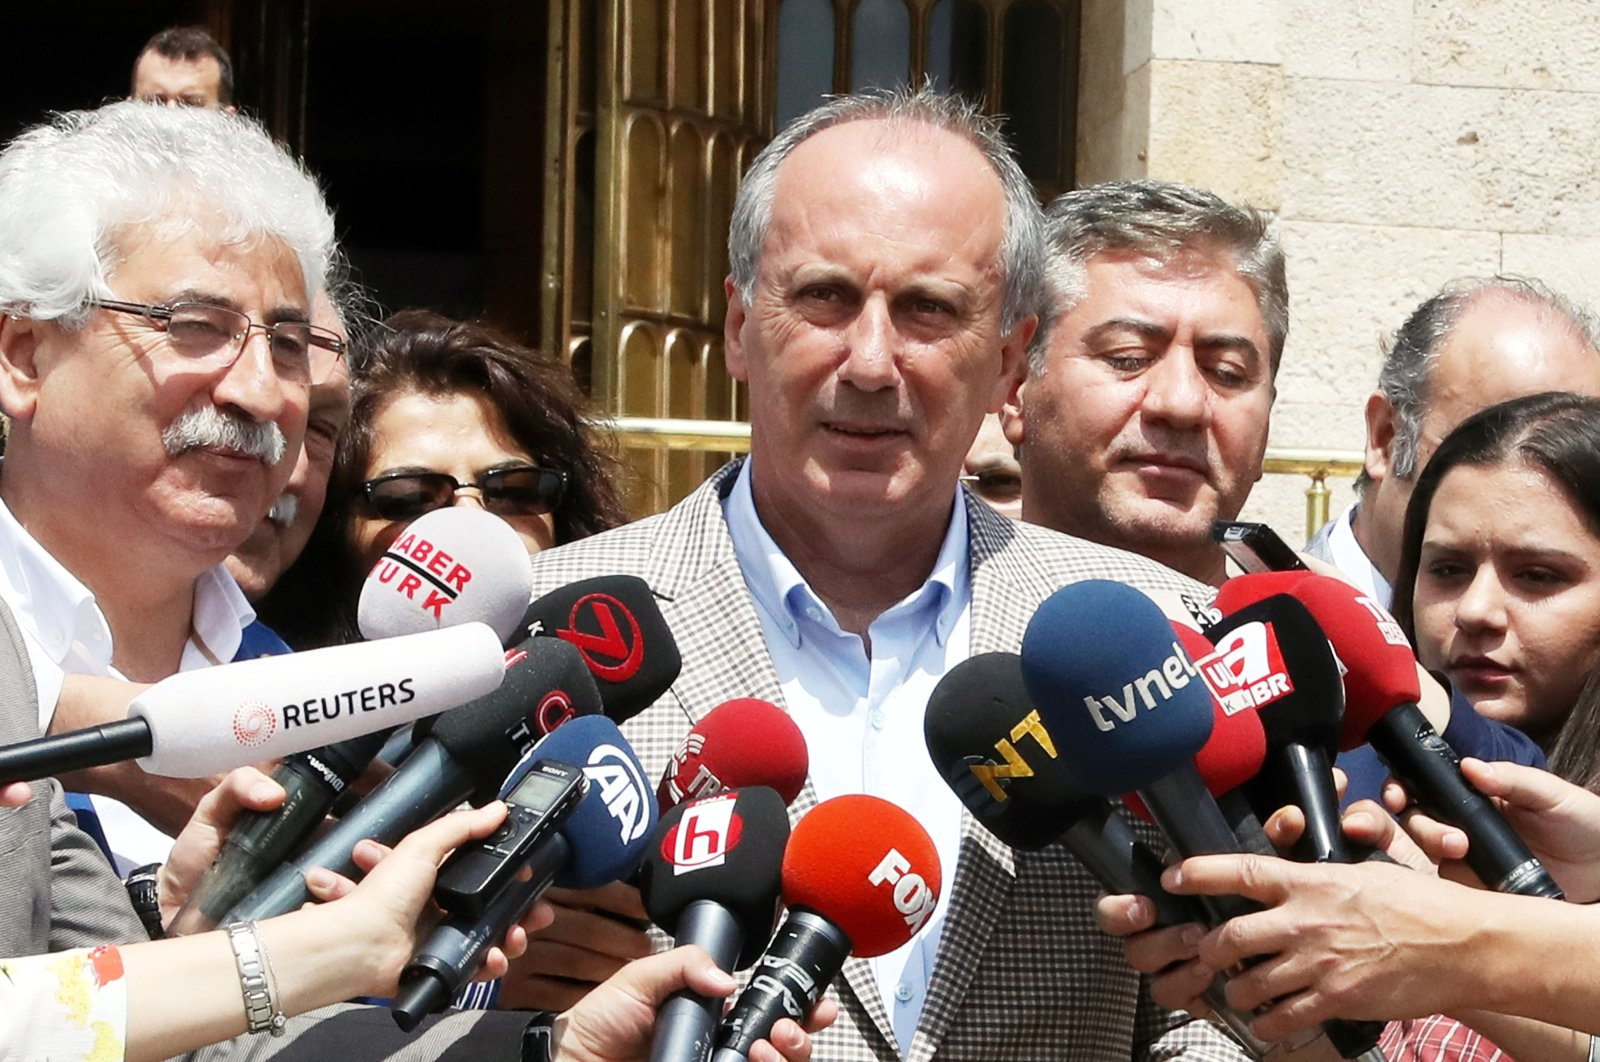 Dissident CHP member Muharrem Ince speaks to reporters at the Turkish Parliament, Ankara, May 7, 2018. (Sabah File Photo)